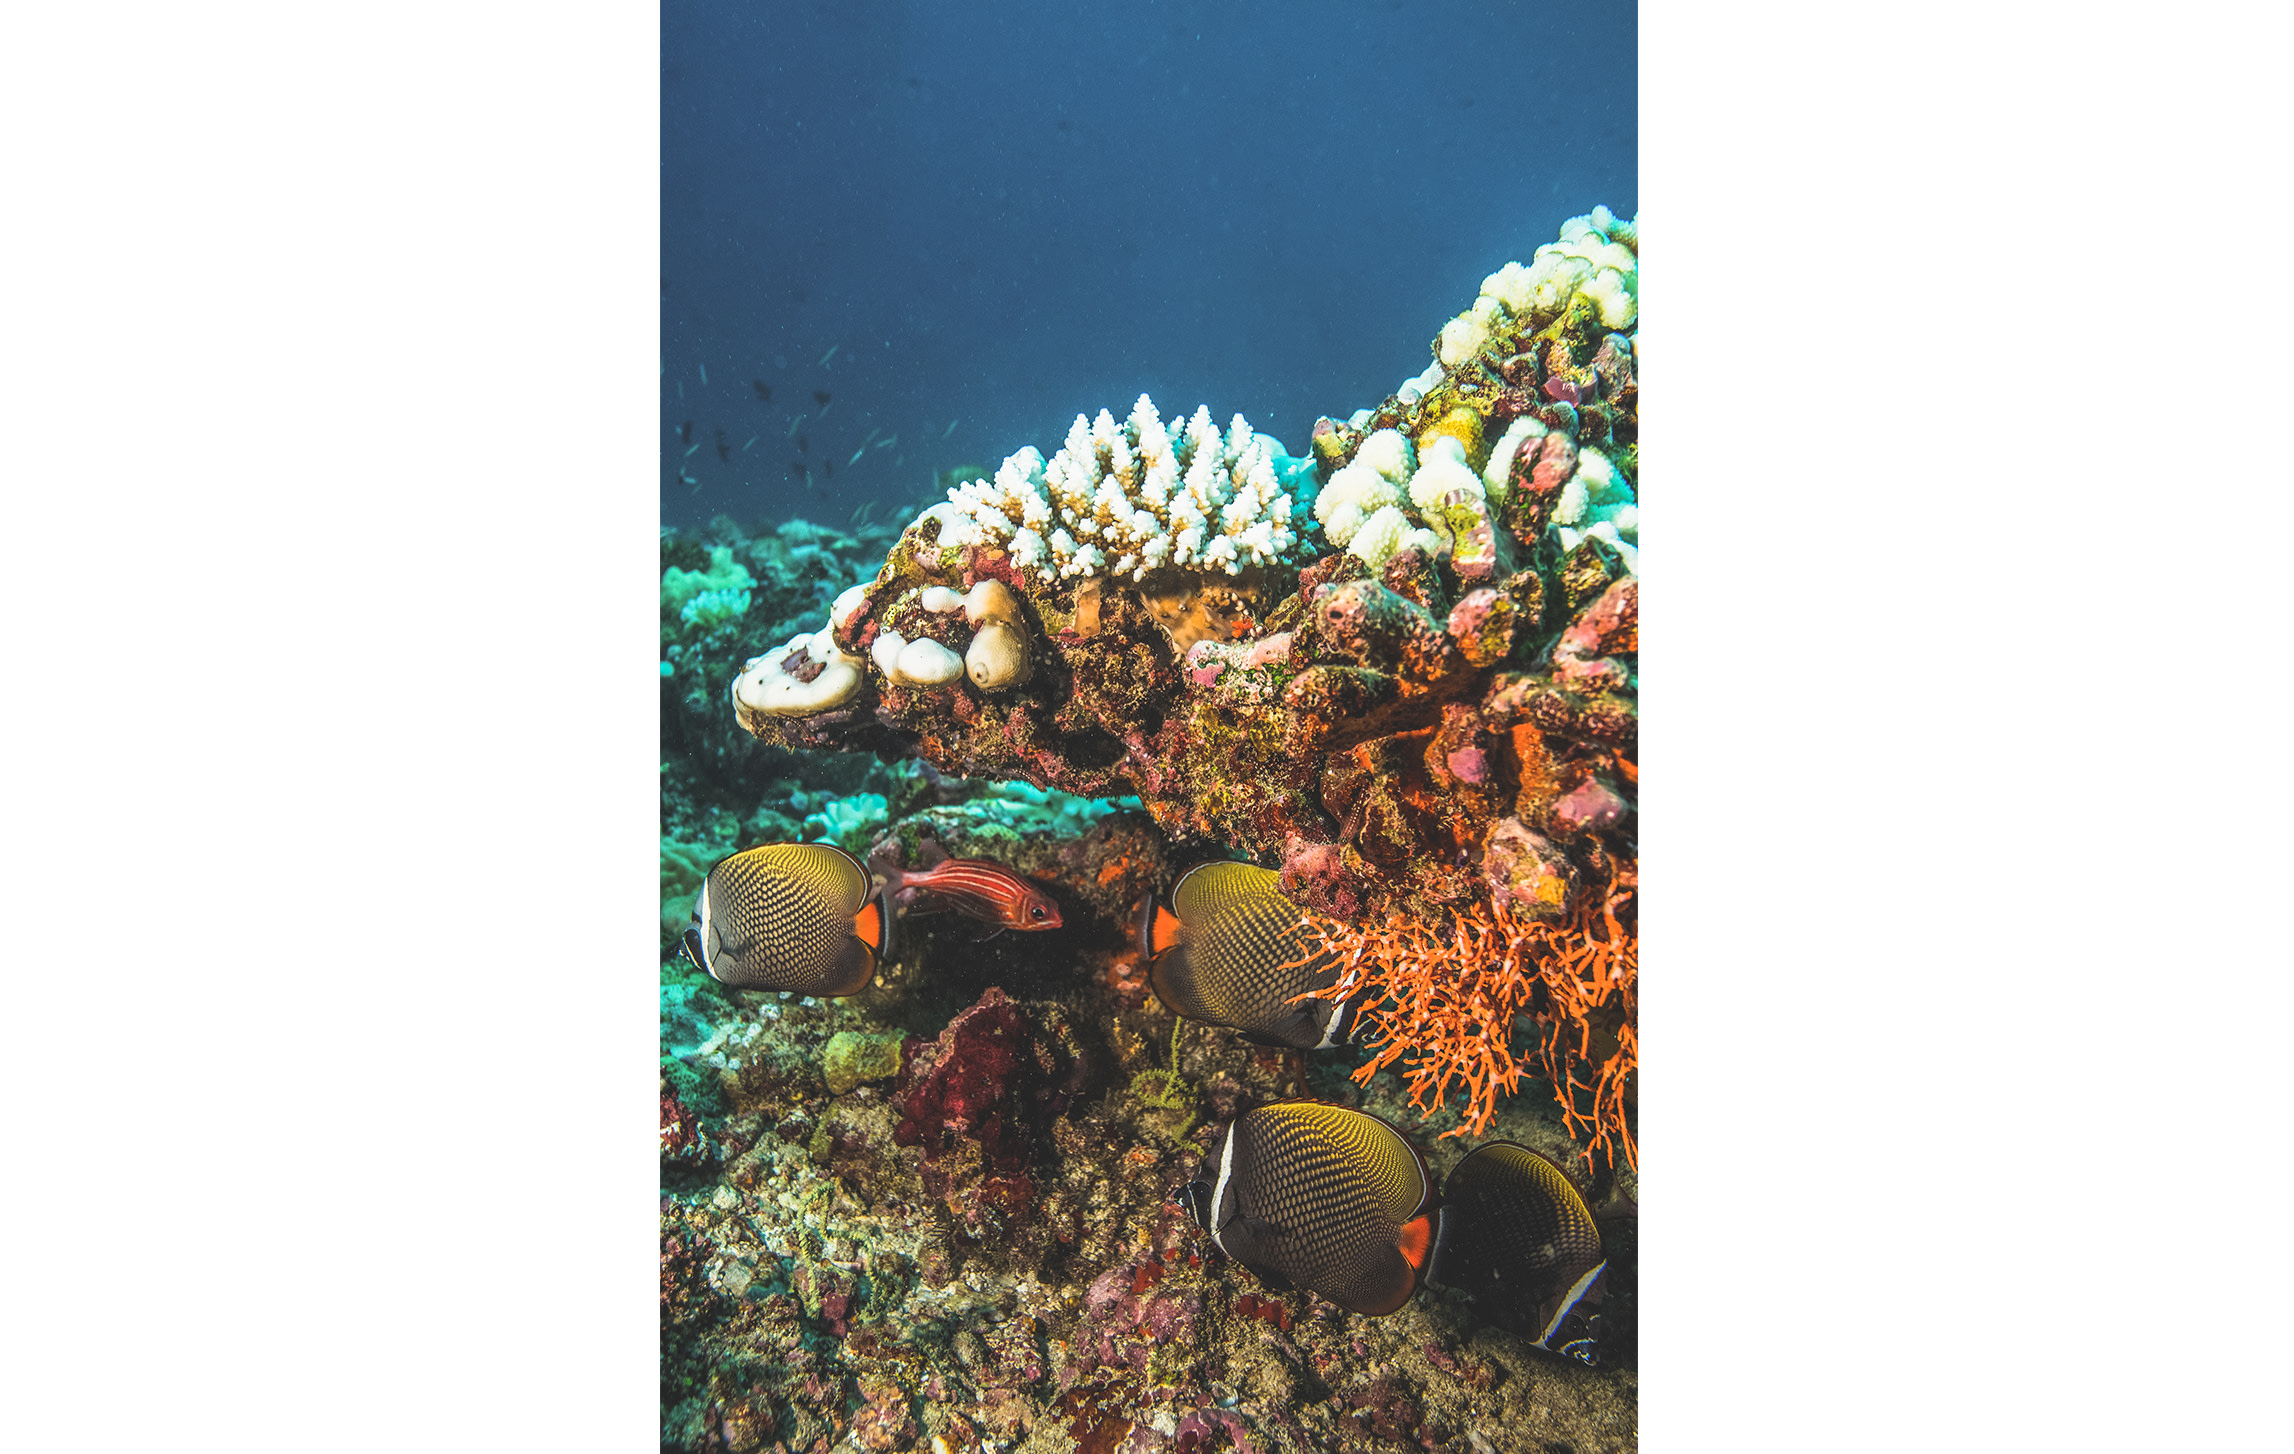 Coral reefs are magical wonderlands of colours and shapes. The fish they host are equally vibrant and dramatic. Coral is made up of thousands of tiny pin-head sized polyps, which is what these red-tailed butterfly fish feed on.